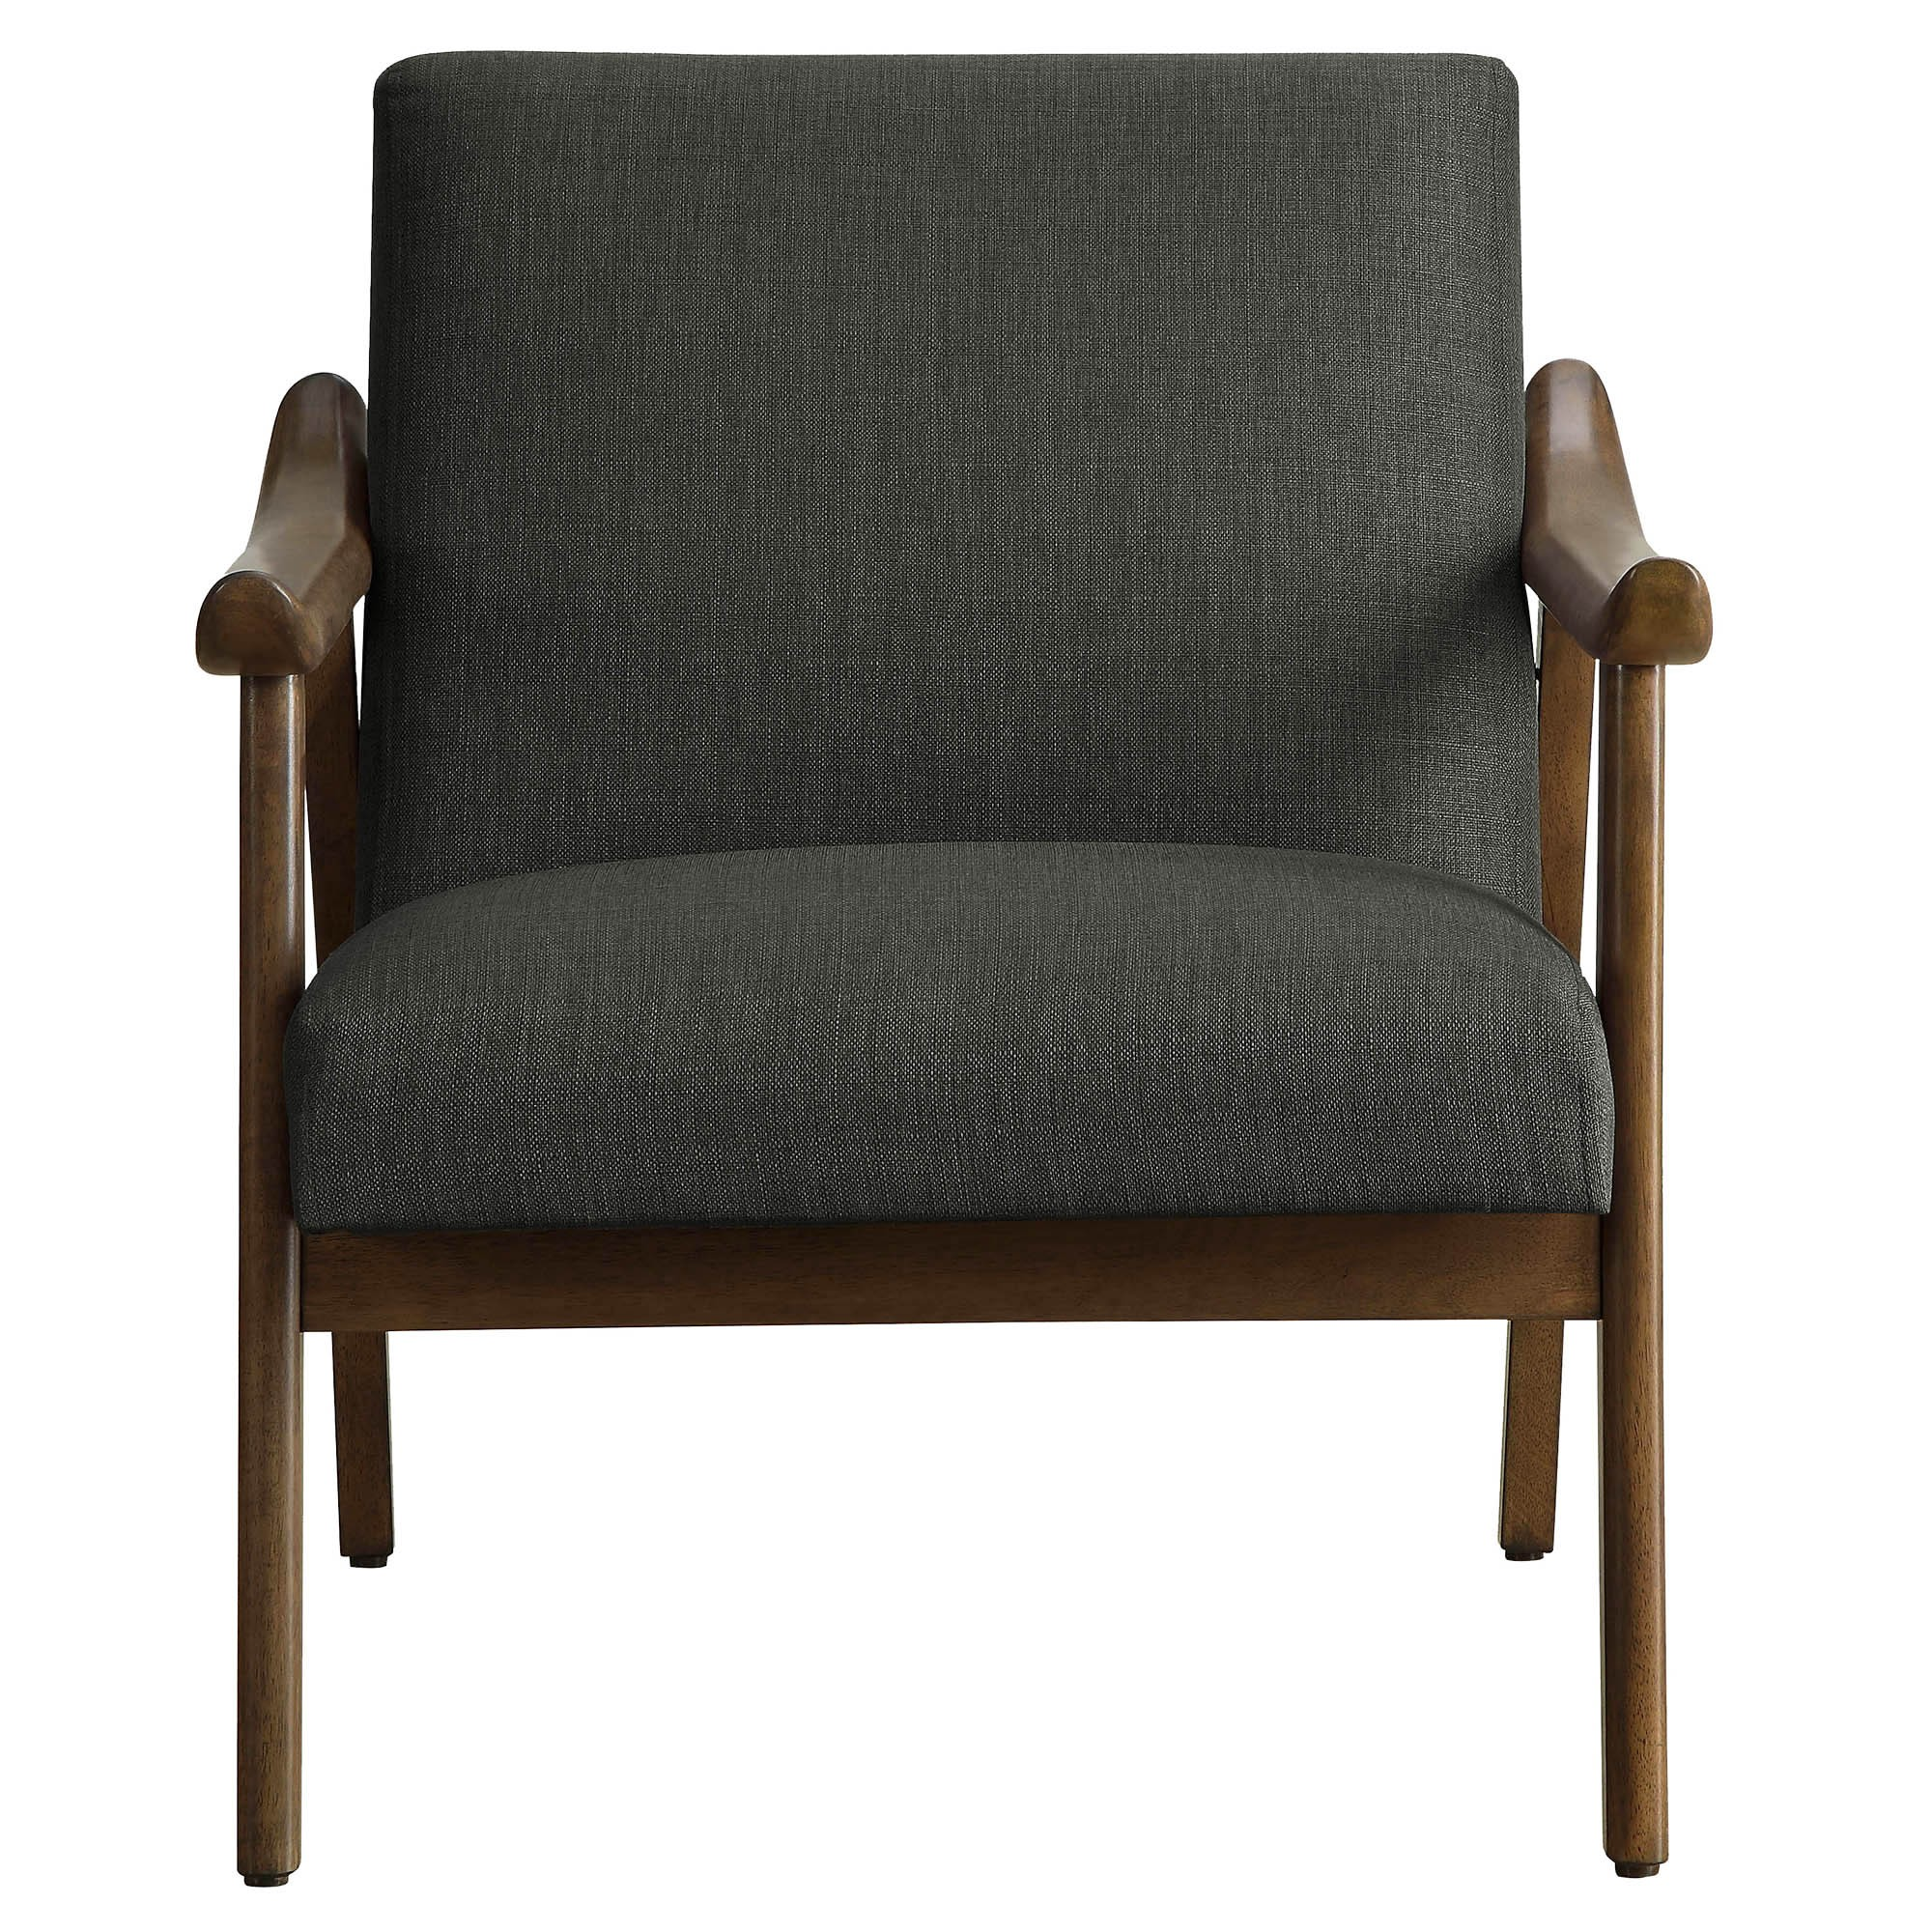 Tylor Accent Chair, 403-337GY, Accent Chairs by Midha Furniture to Brampton, Mississauga, Etobicoke, Toronto, Scraborough, Caledon, Oakville, Markham, Ajax, Pickering, Oshawa, Richmondhill, Kitchener, Hamilton and GTA area